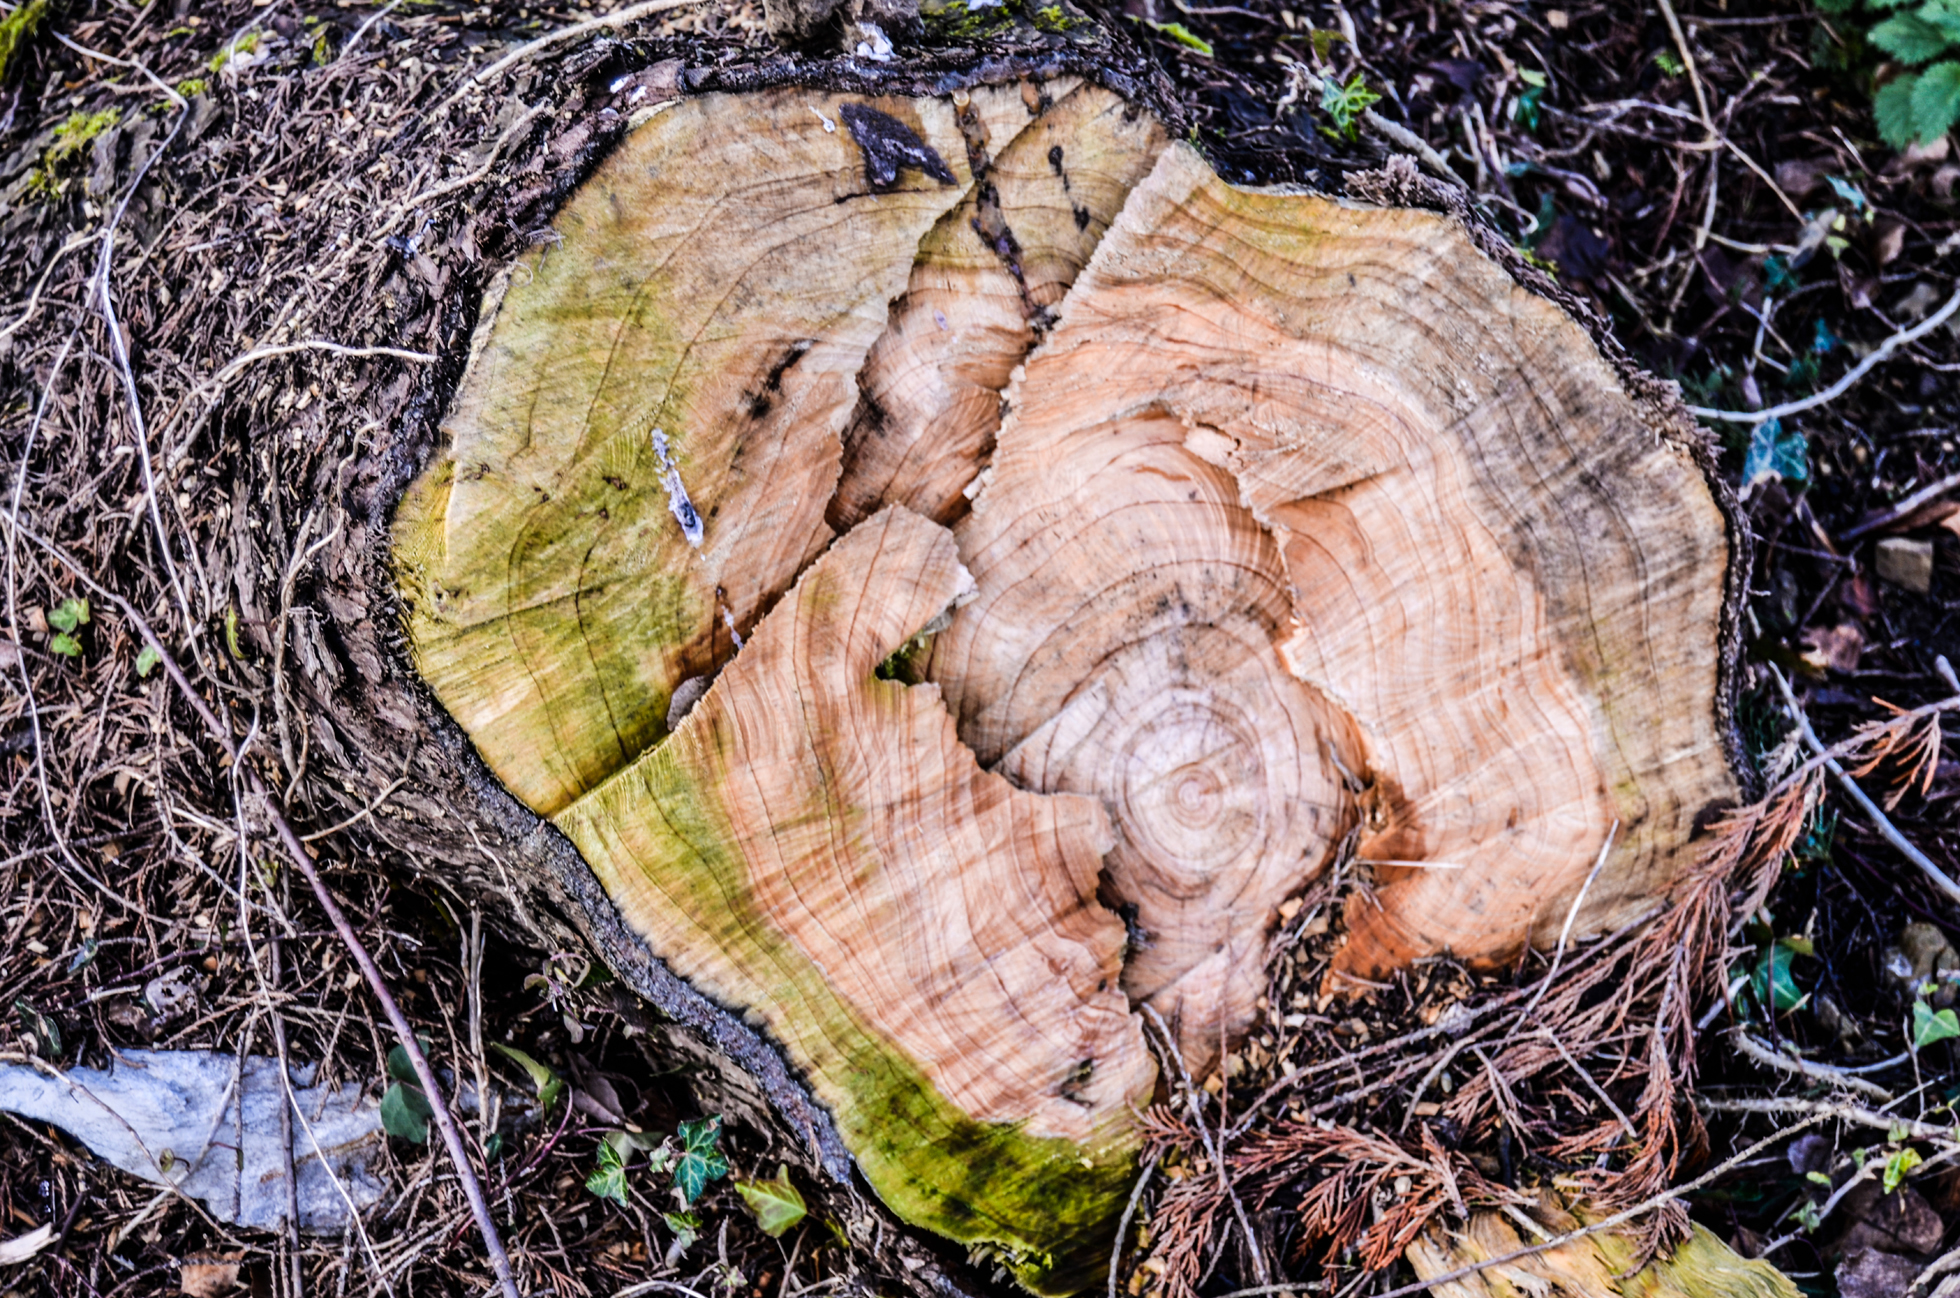 Tree stump in a yard